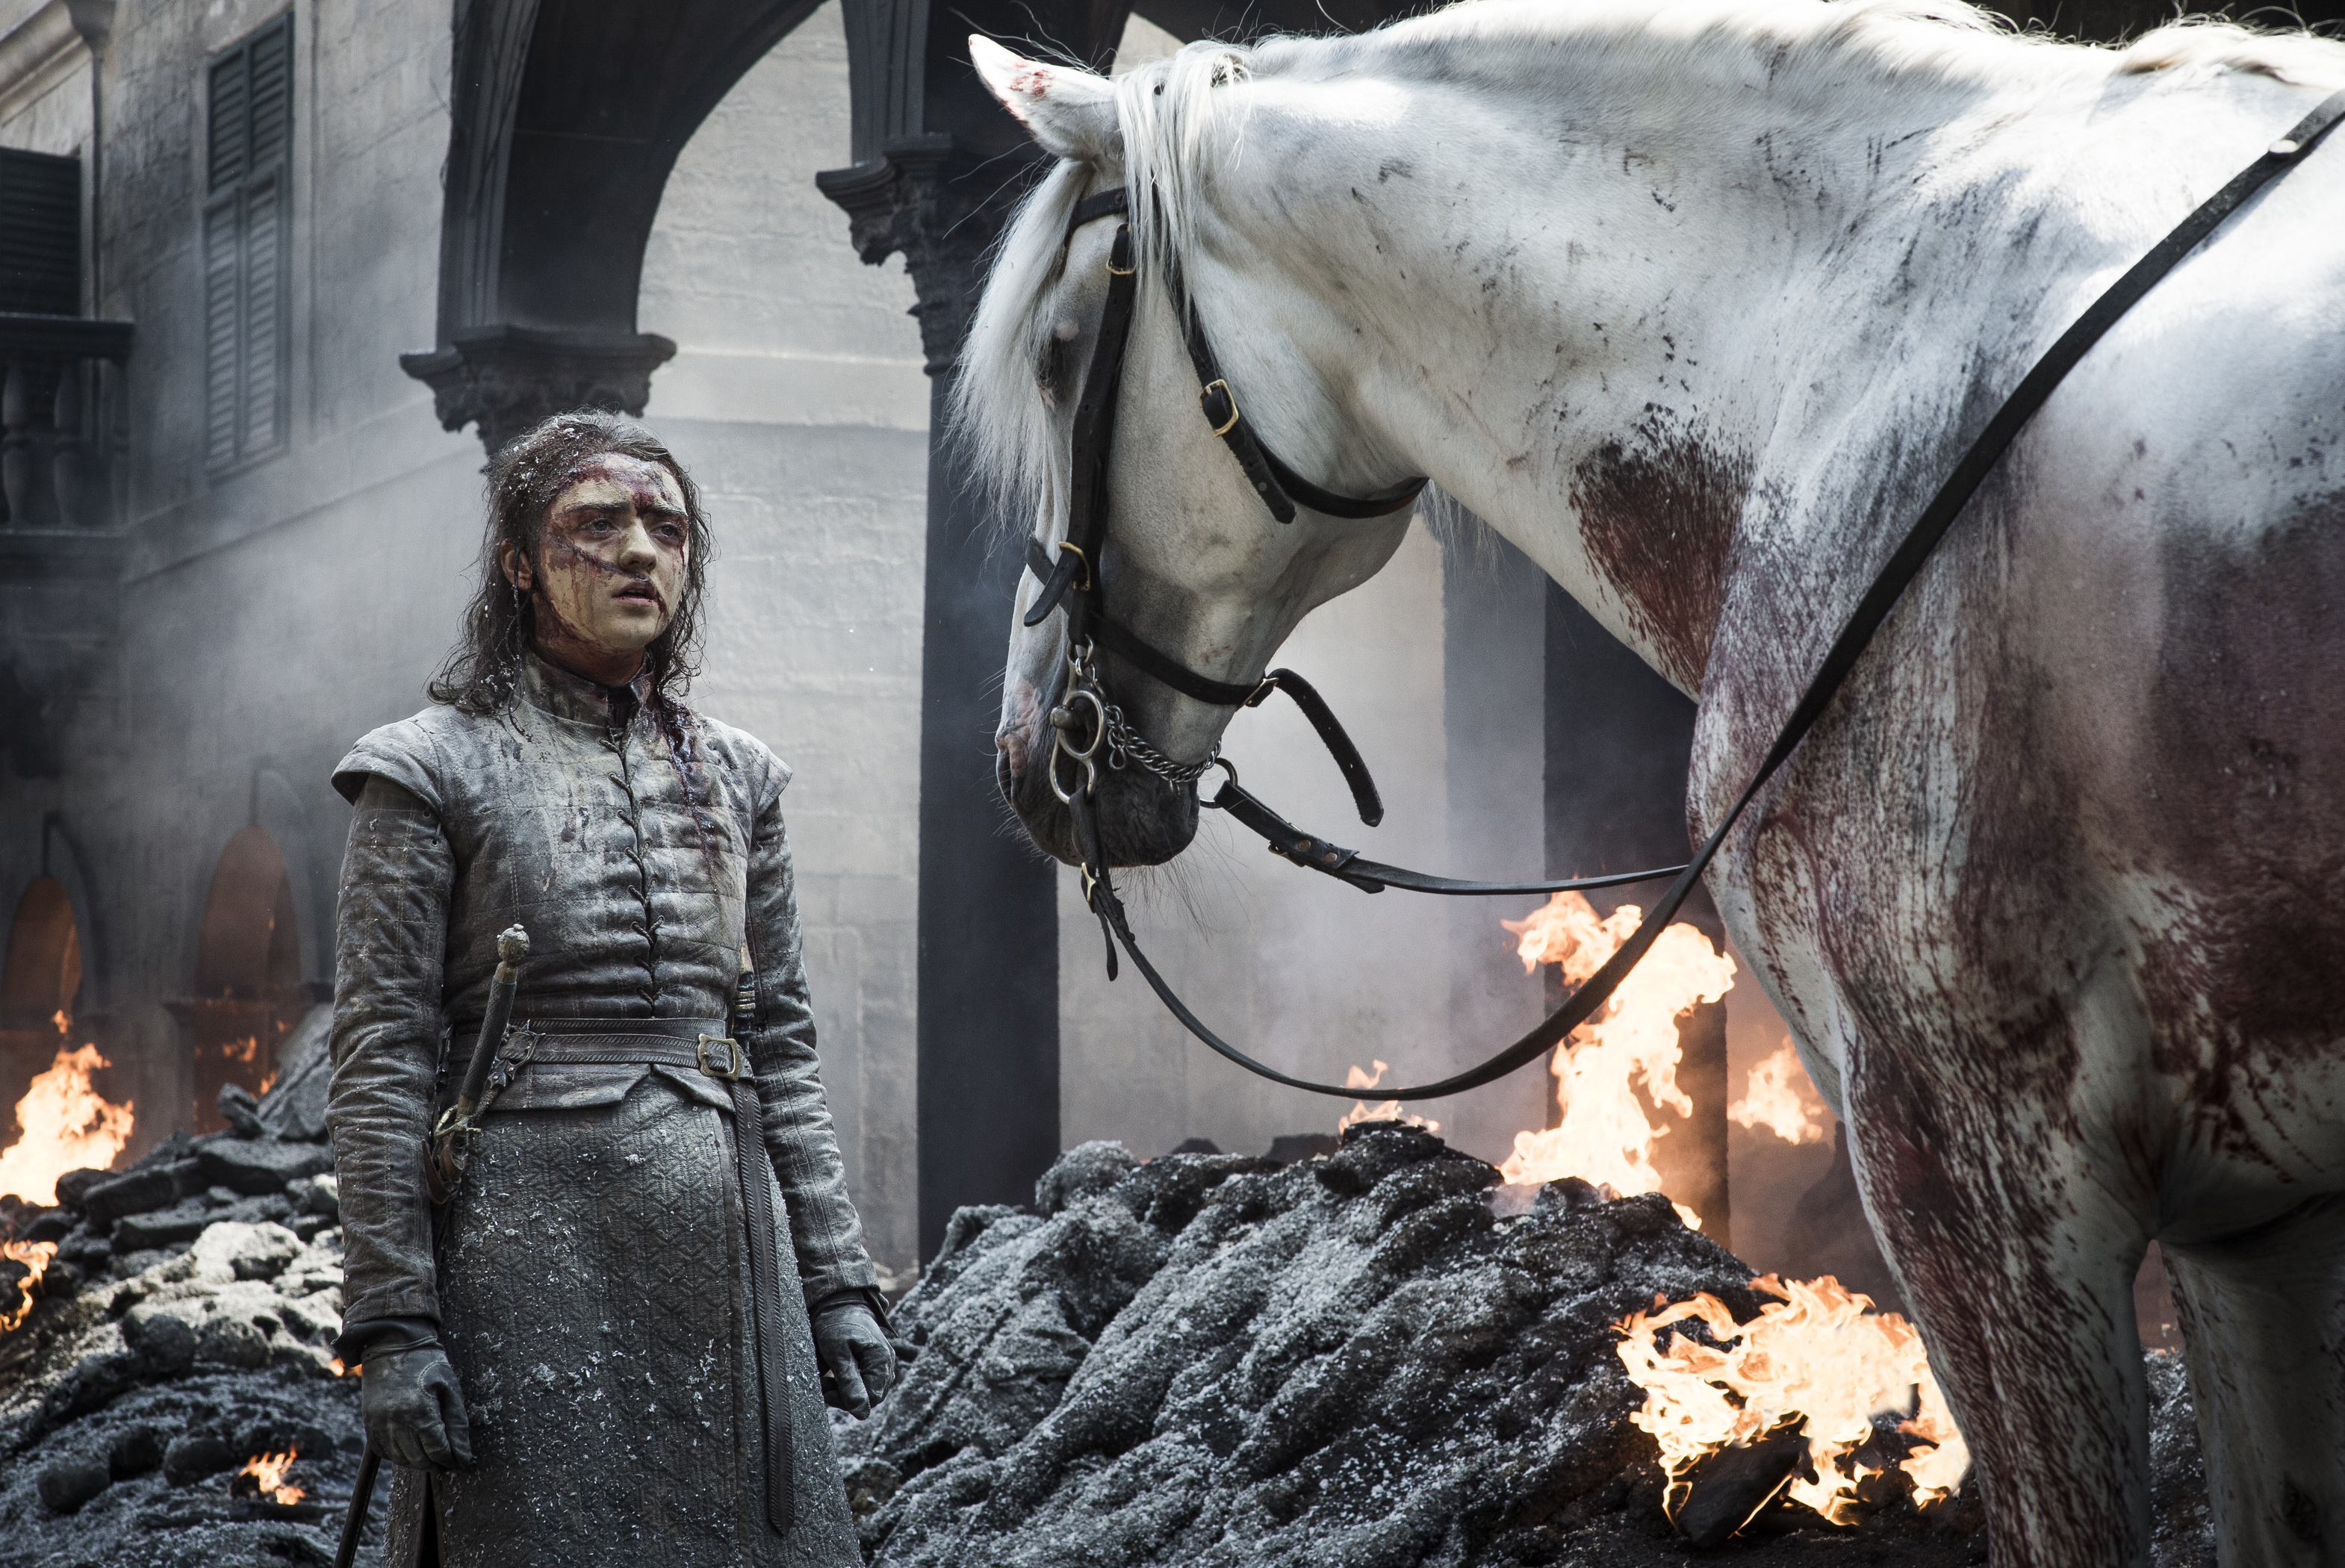 Arya Stark fights for survival in Game of Thrones season 8 episode 5.